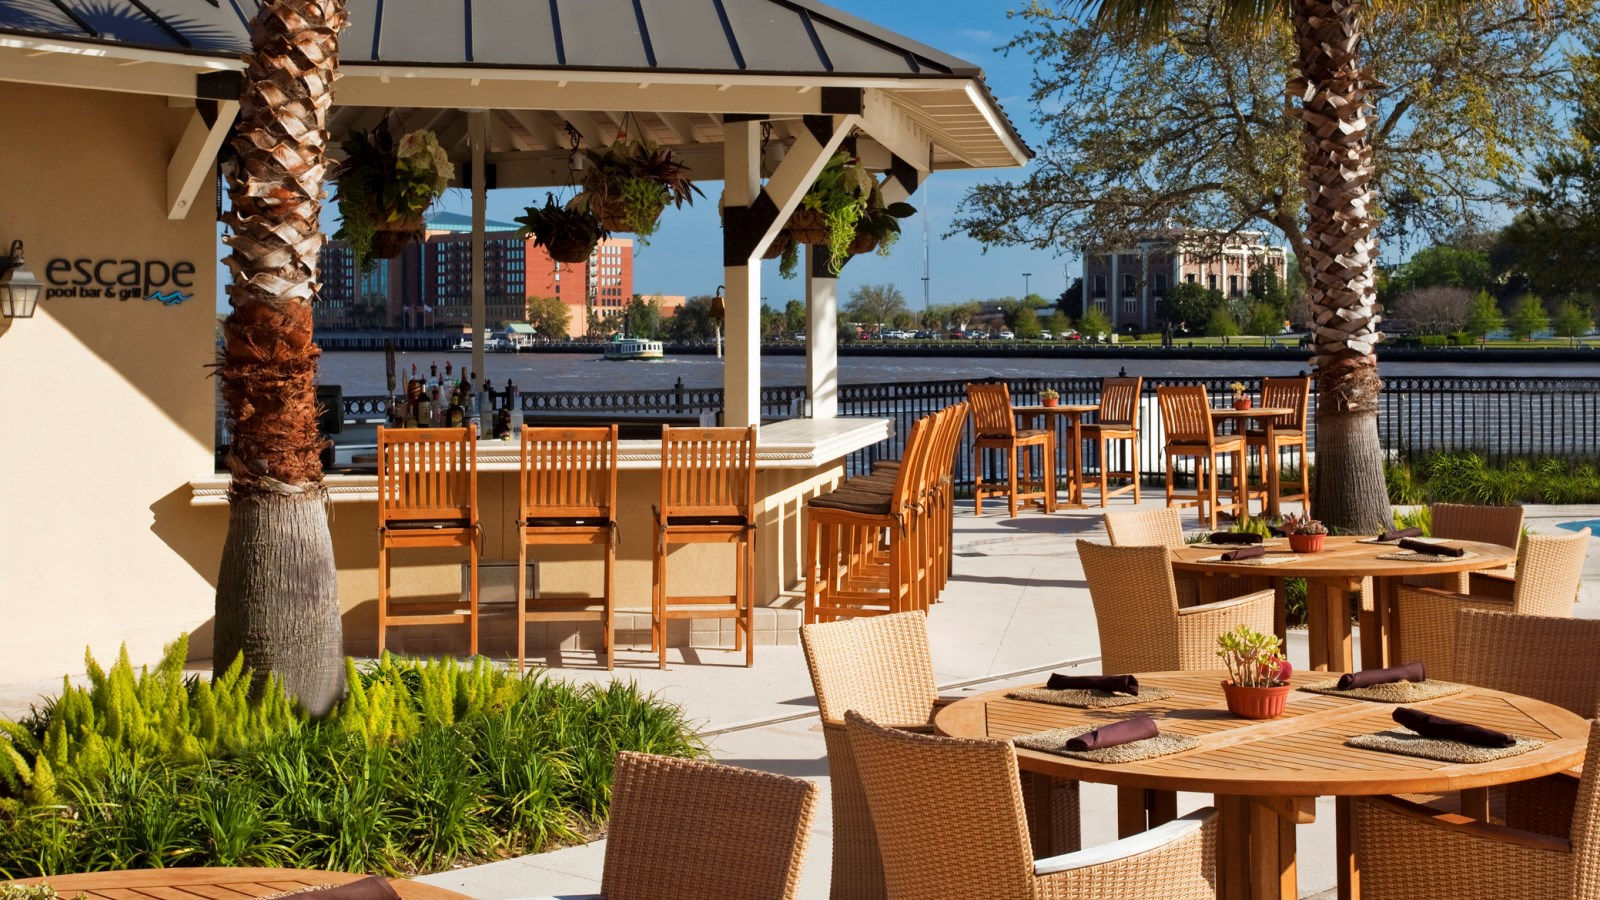 Savannah Restaurants - Escape Pool Bar & Grill